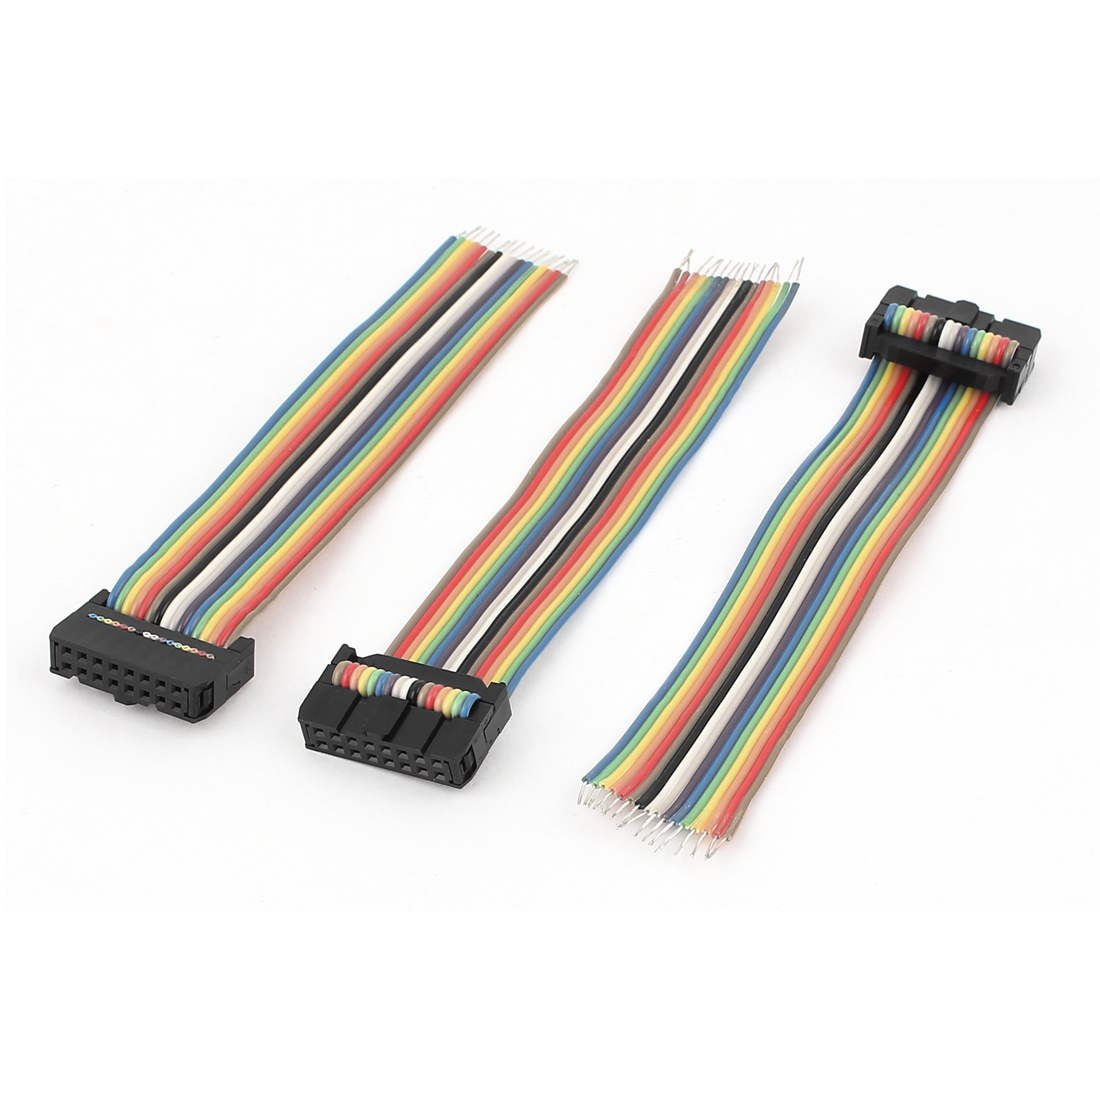 3pcs 16Pin Female Flat IDC Ribbon Cable Connector Rainbow Color